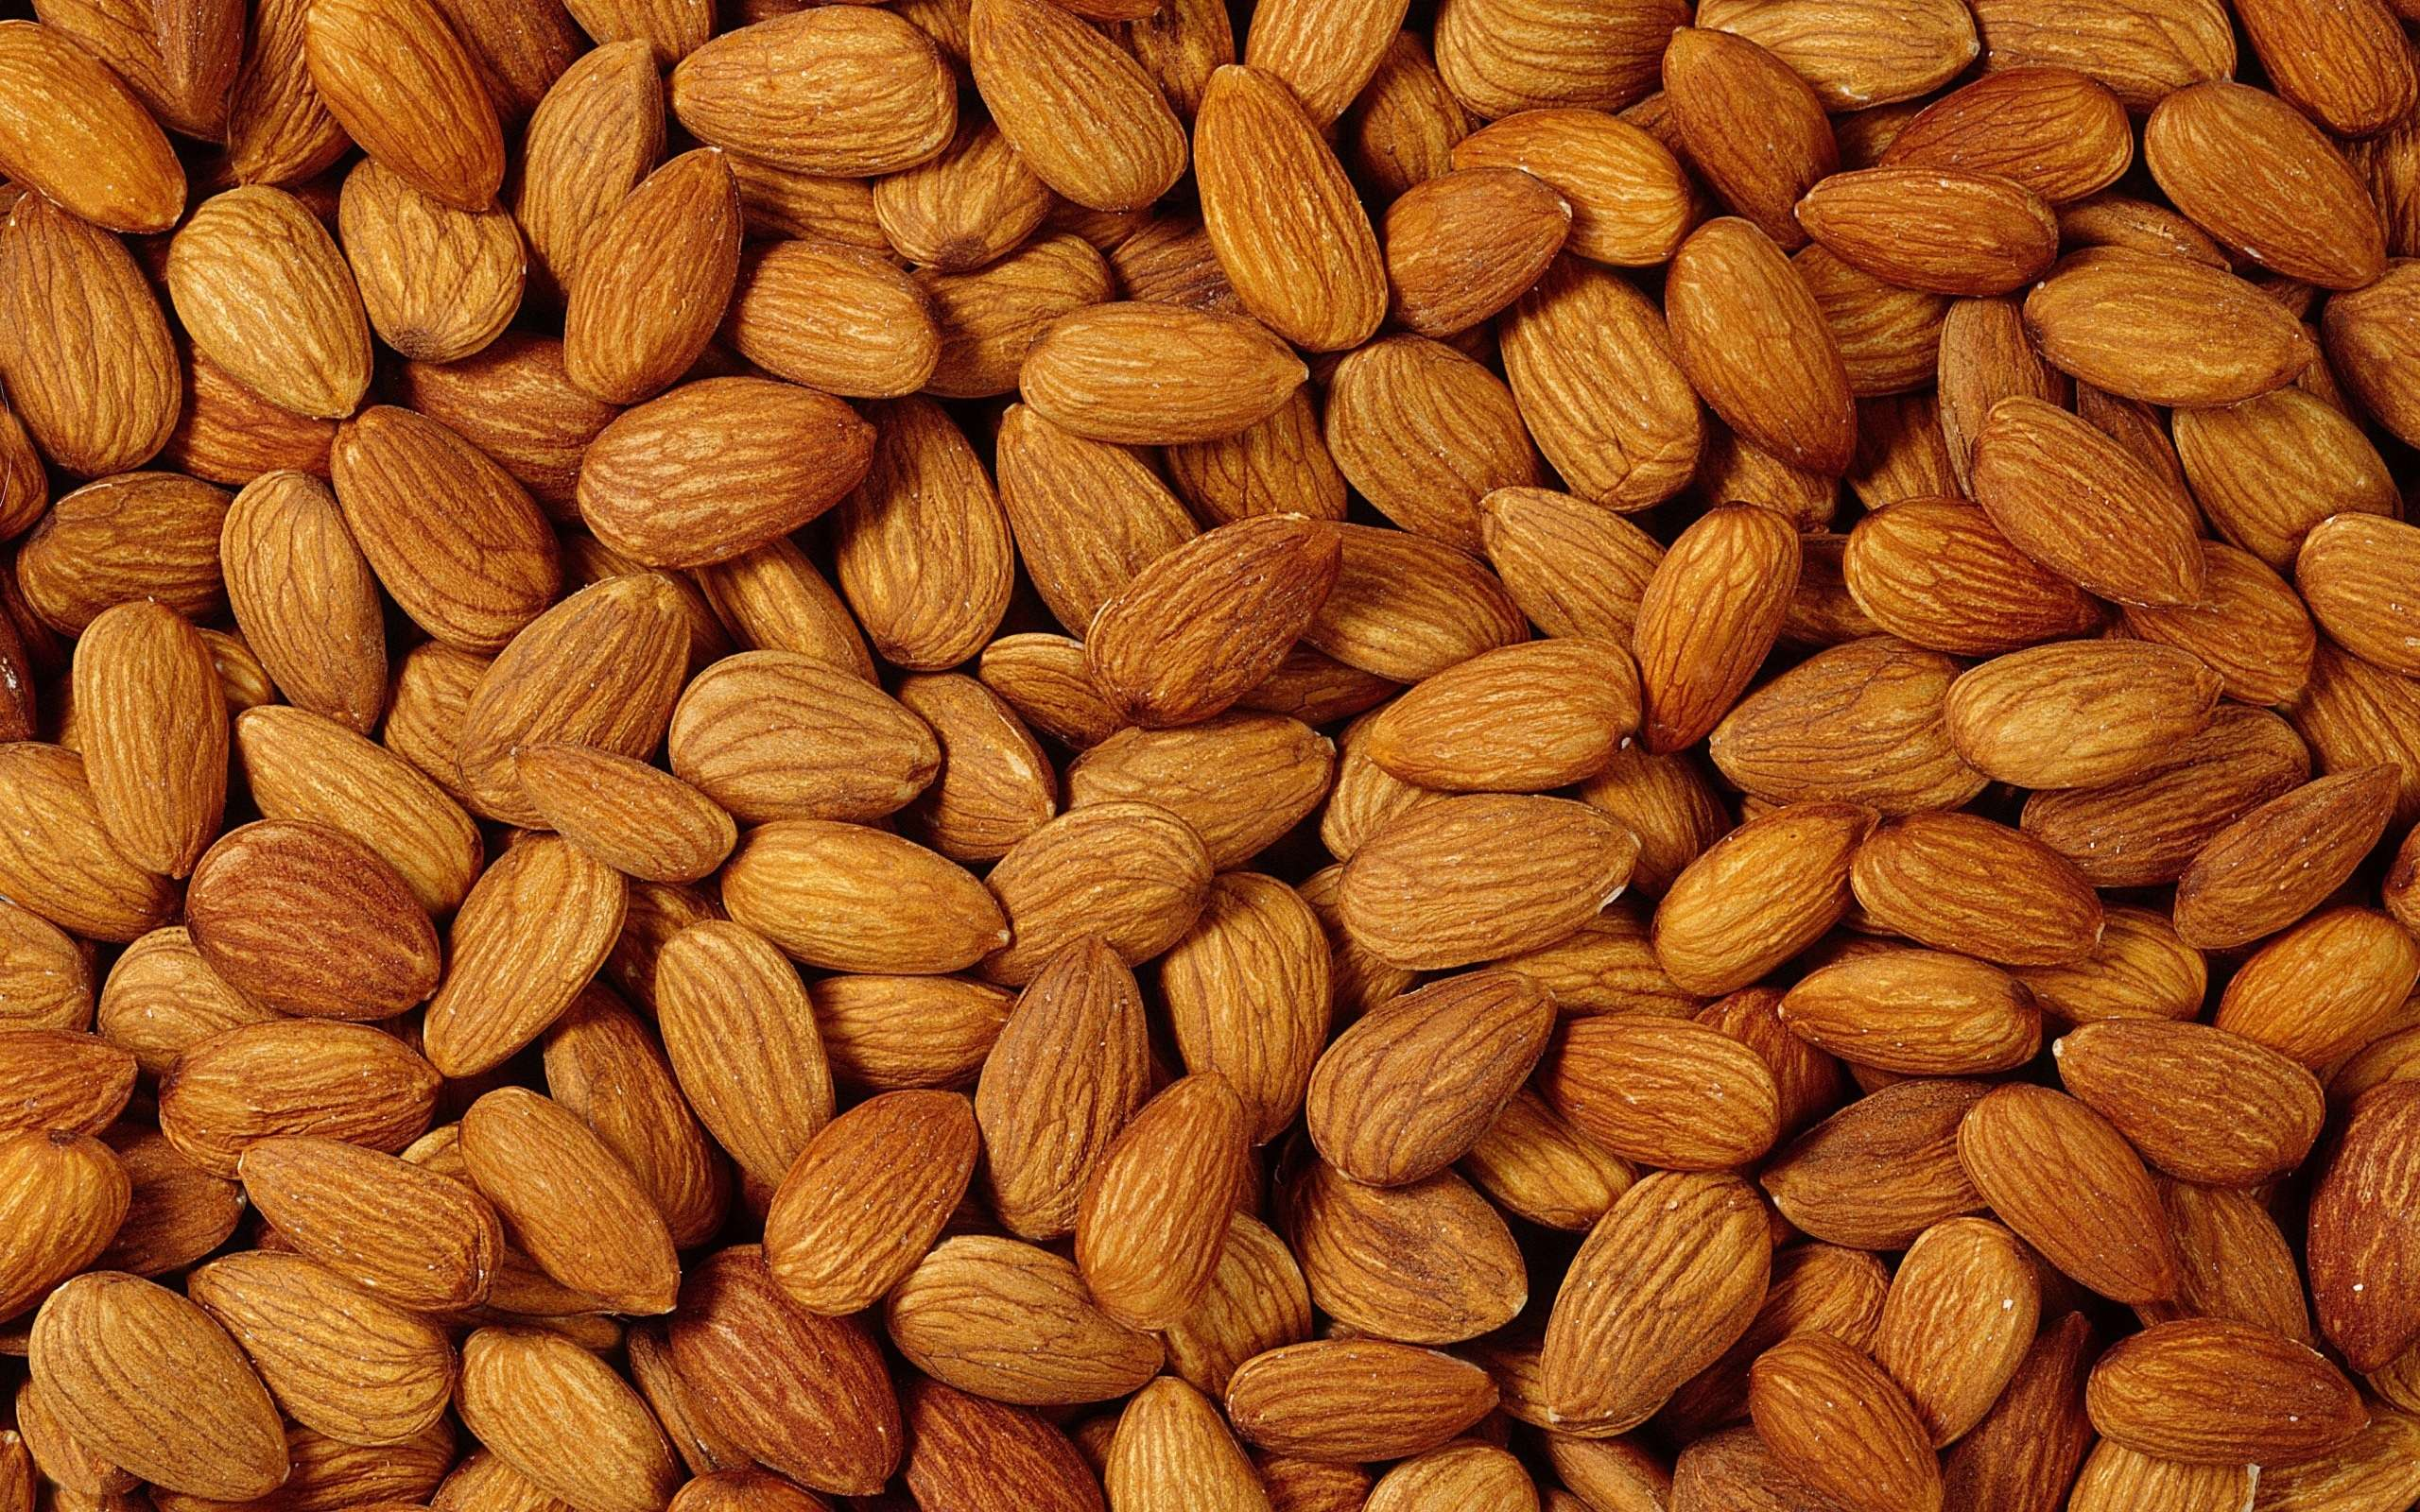 Sweet Almonds Nuts and Kernels